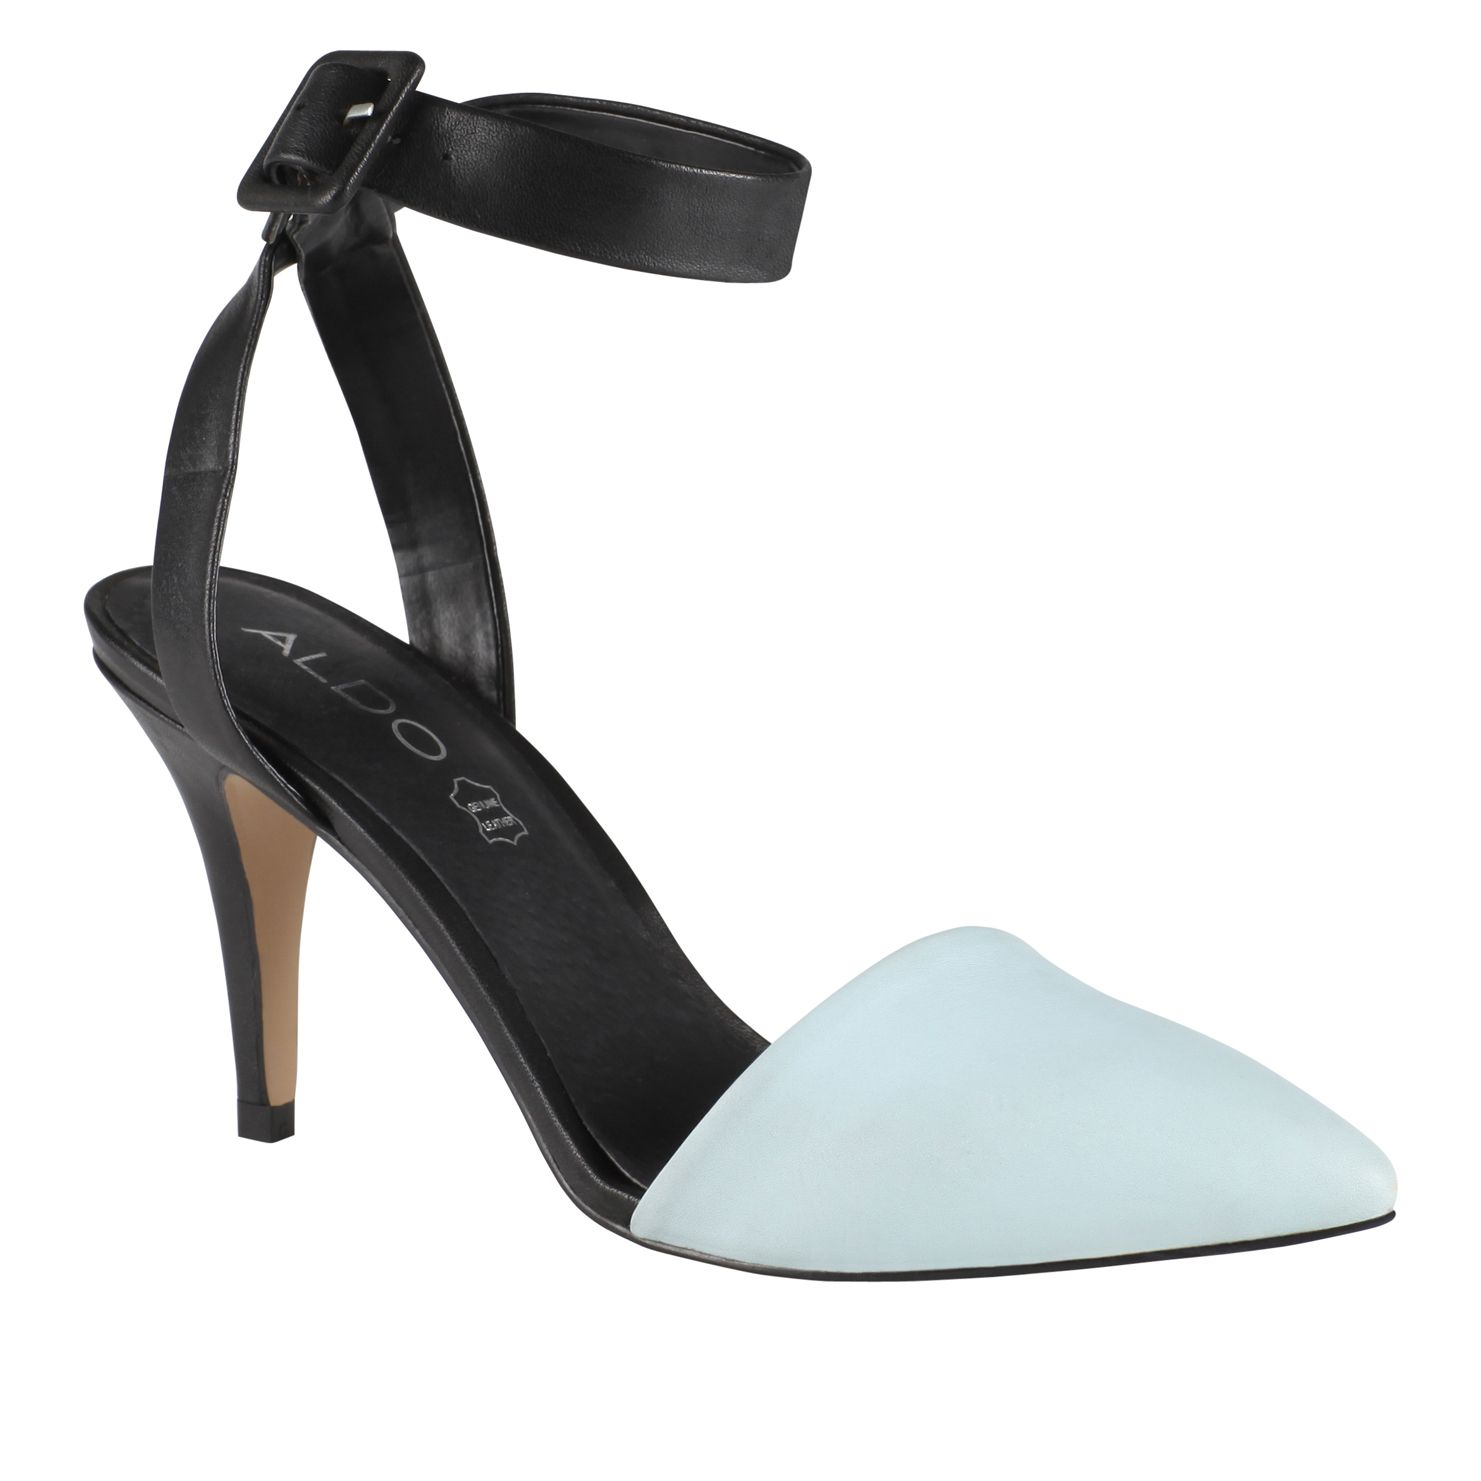 Canapile pointed ankle strap court shoes